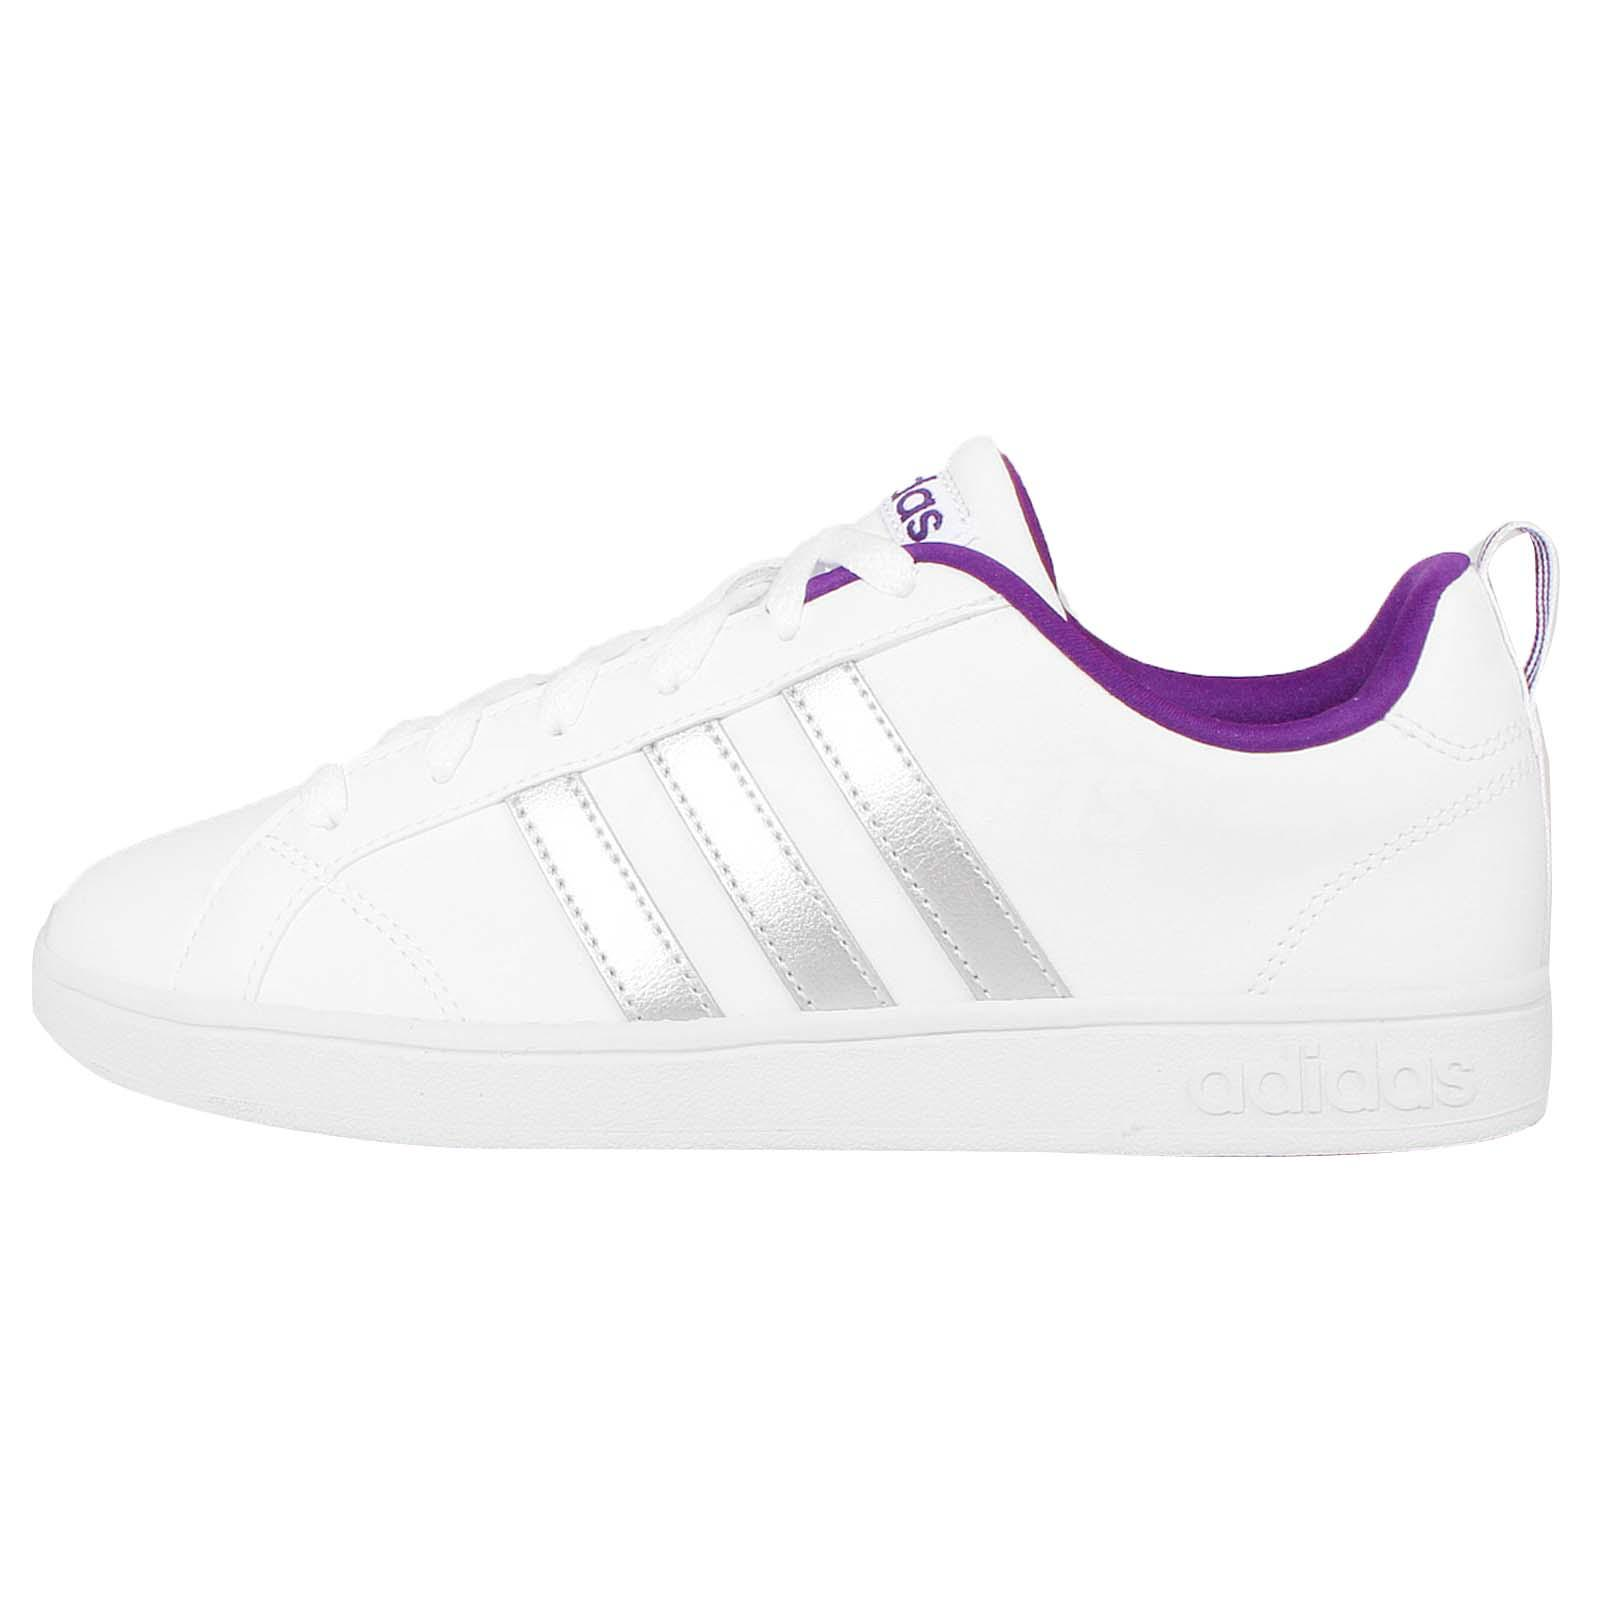 Adidas Neo Advantage Womens Sneakers